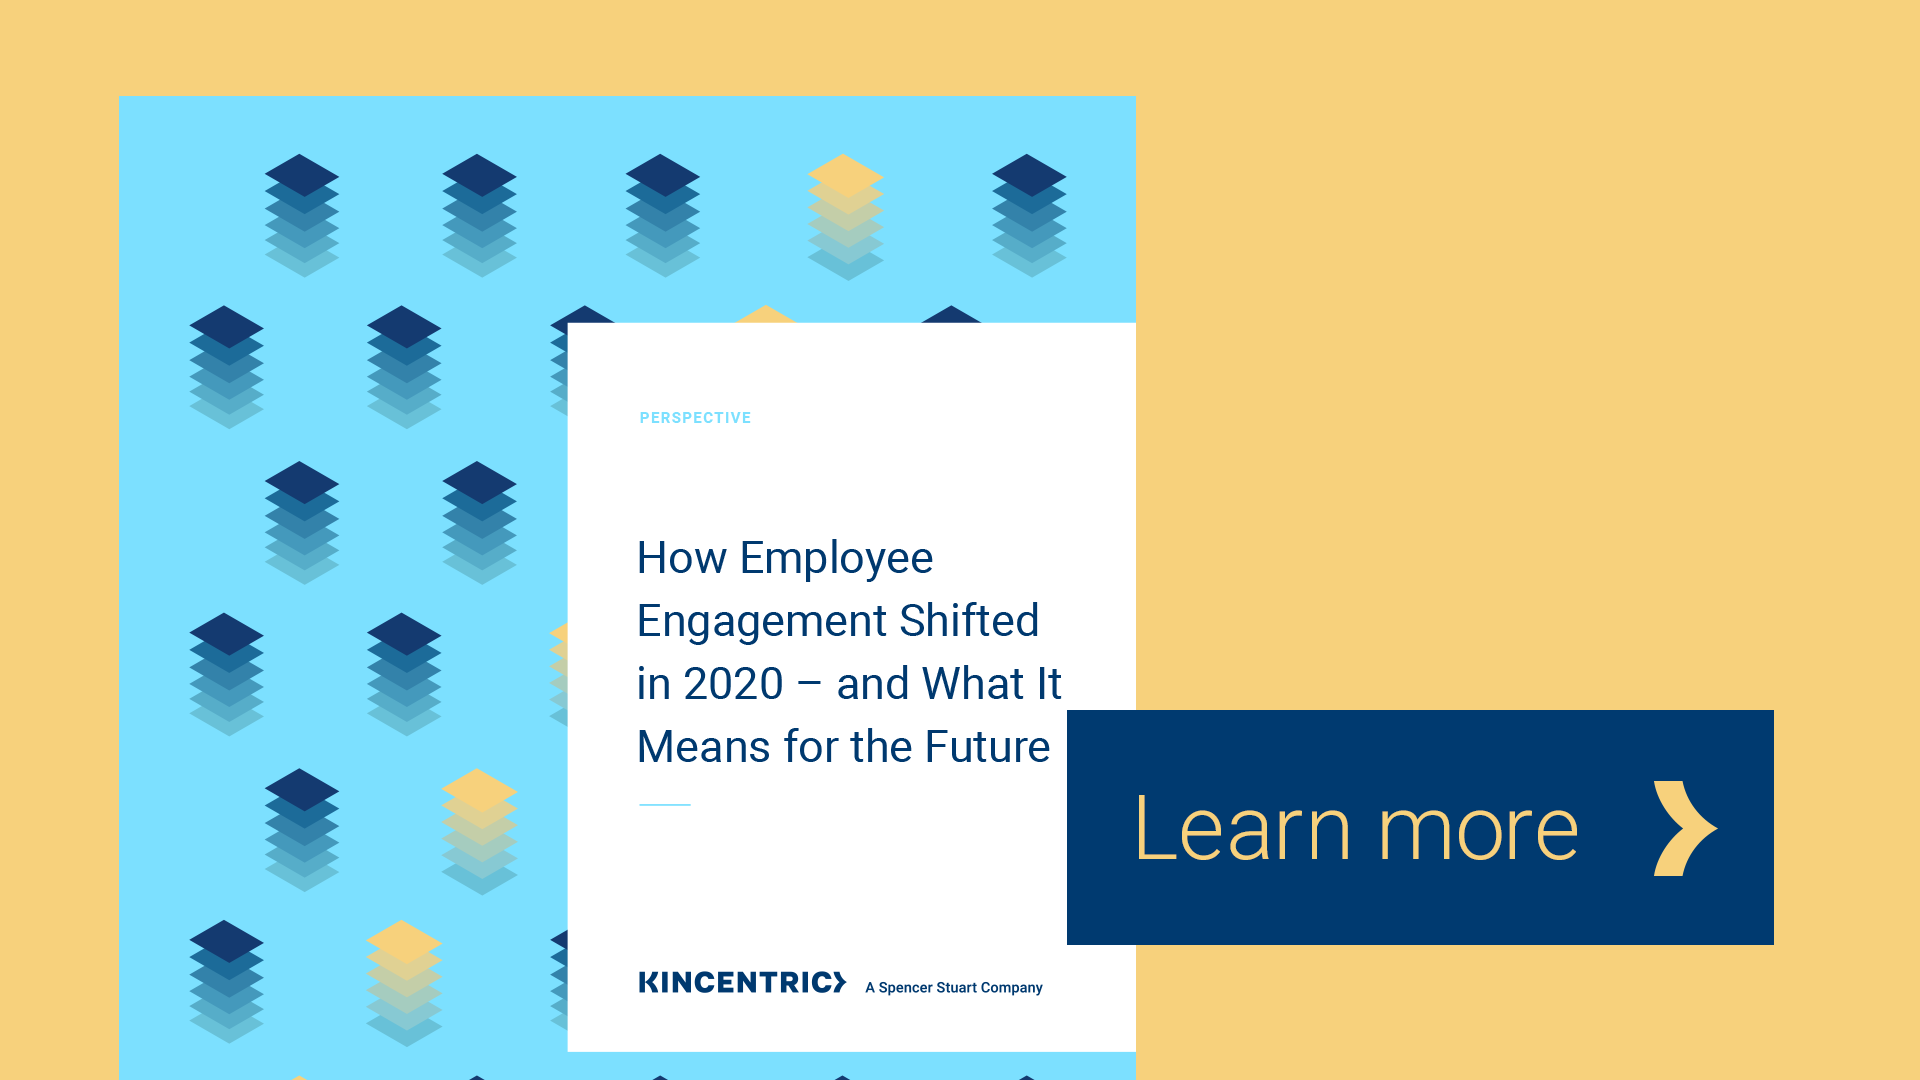 How Employee Engagement Shifted